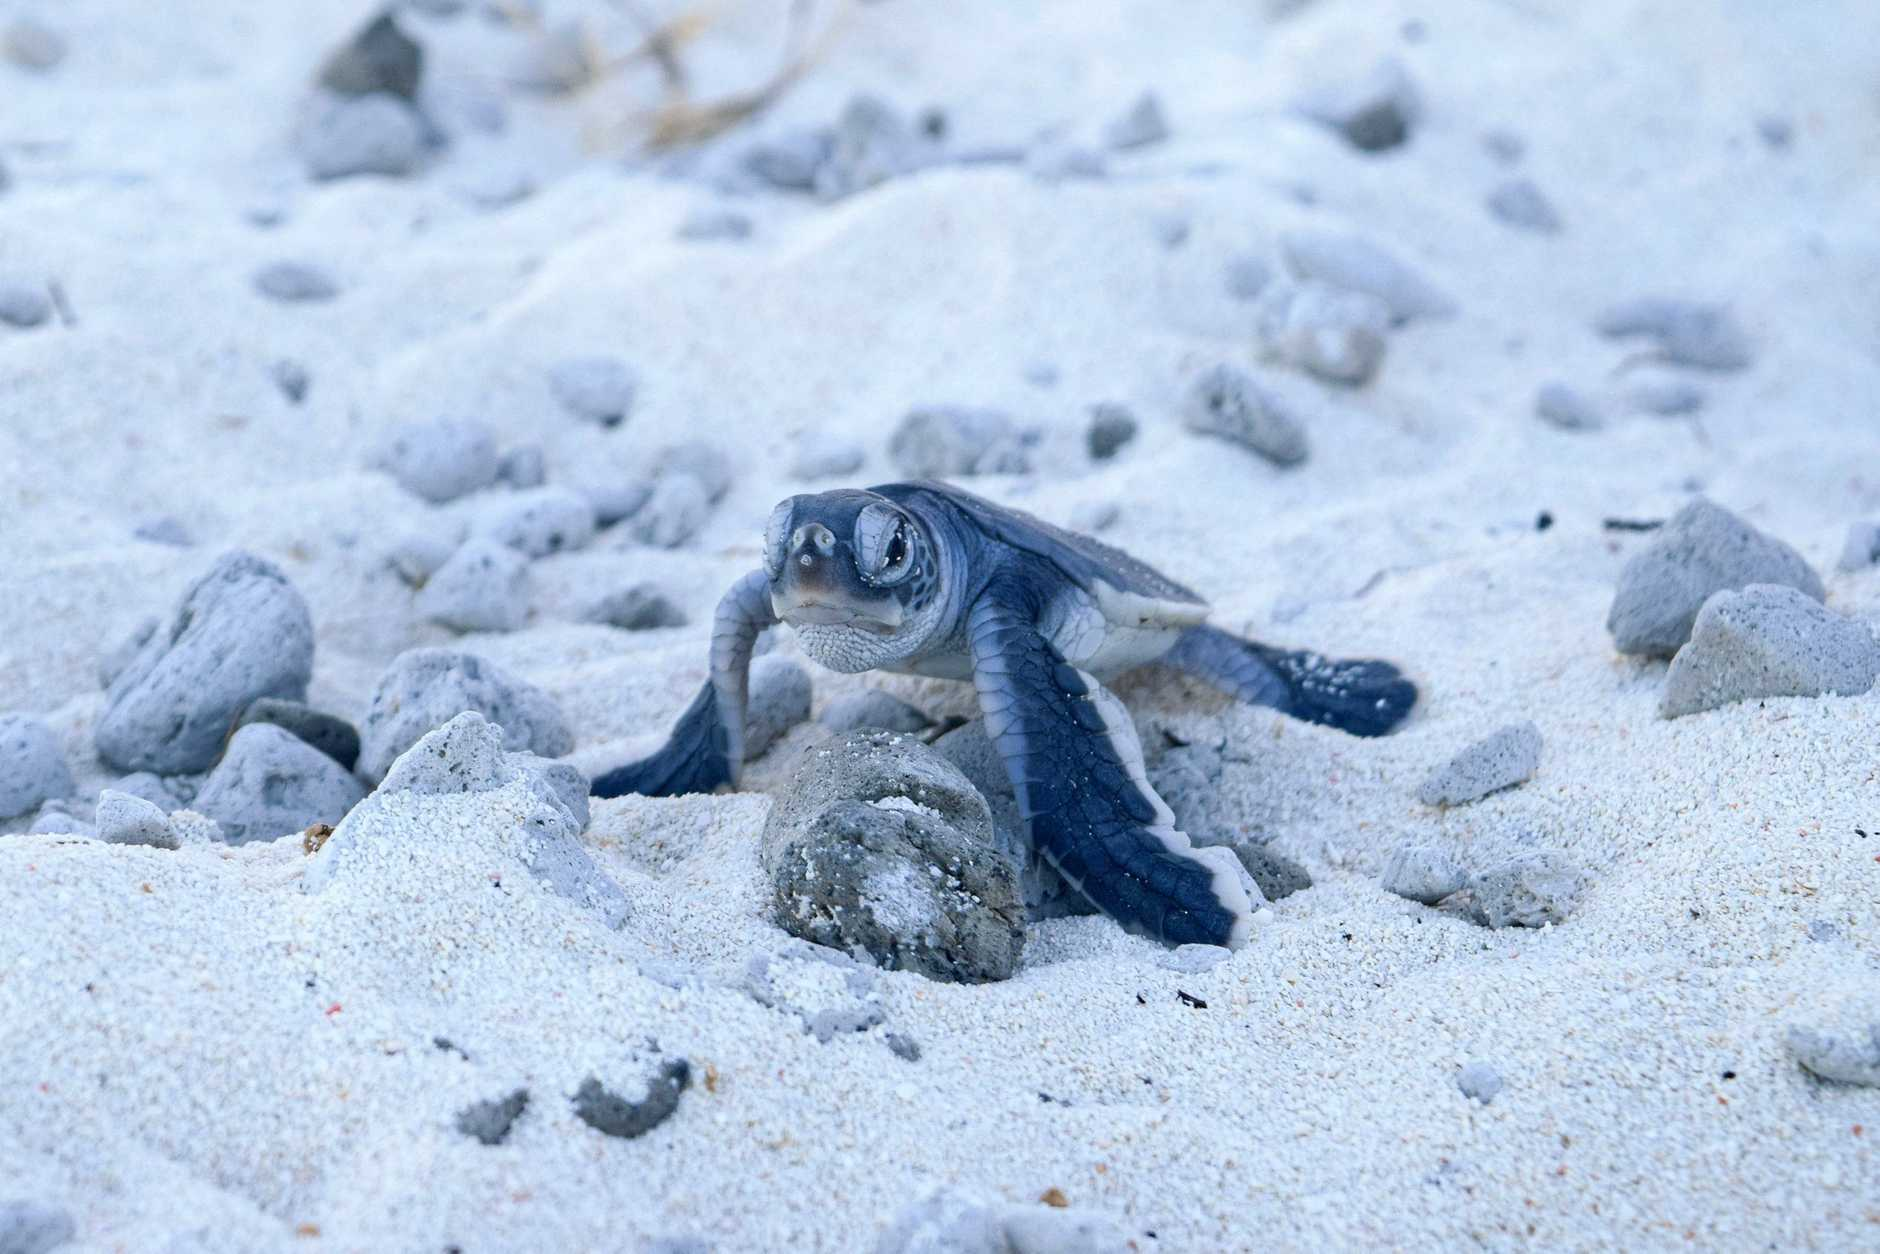 FIRST VENTURE: Turtle hatchlings are making their way across the sand and back into the ocean at Heron Island.